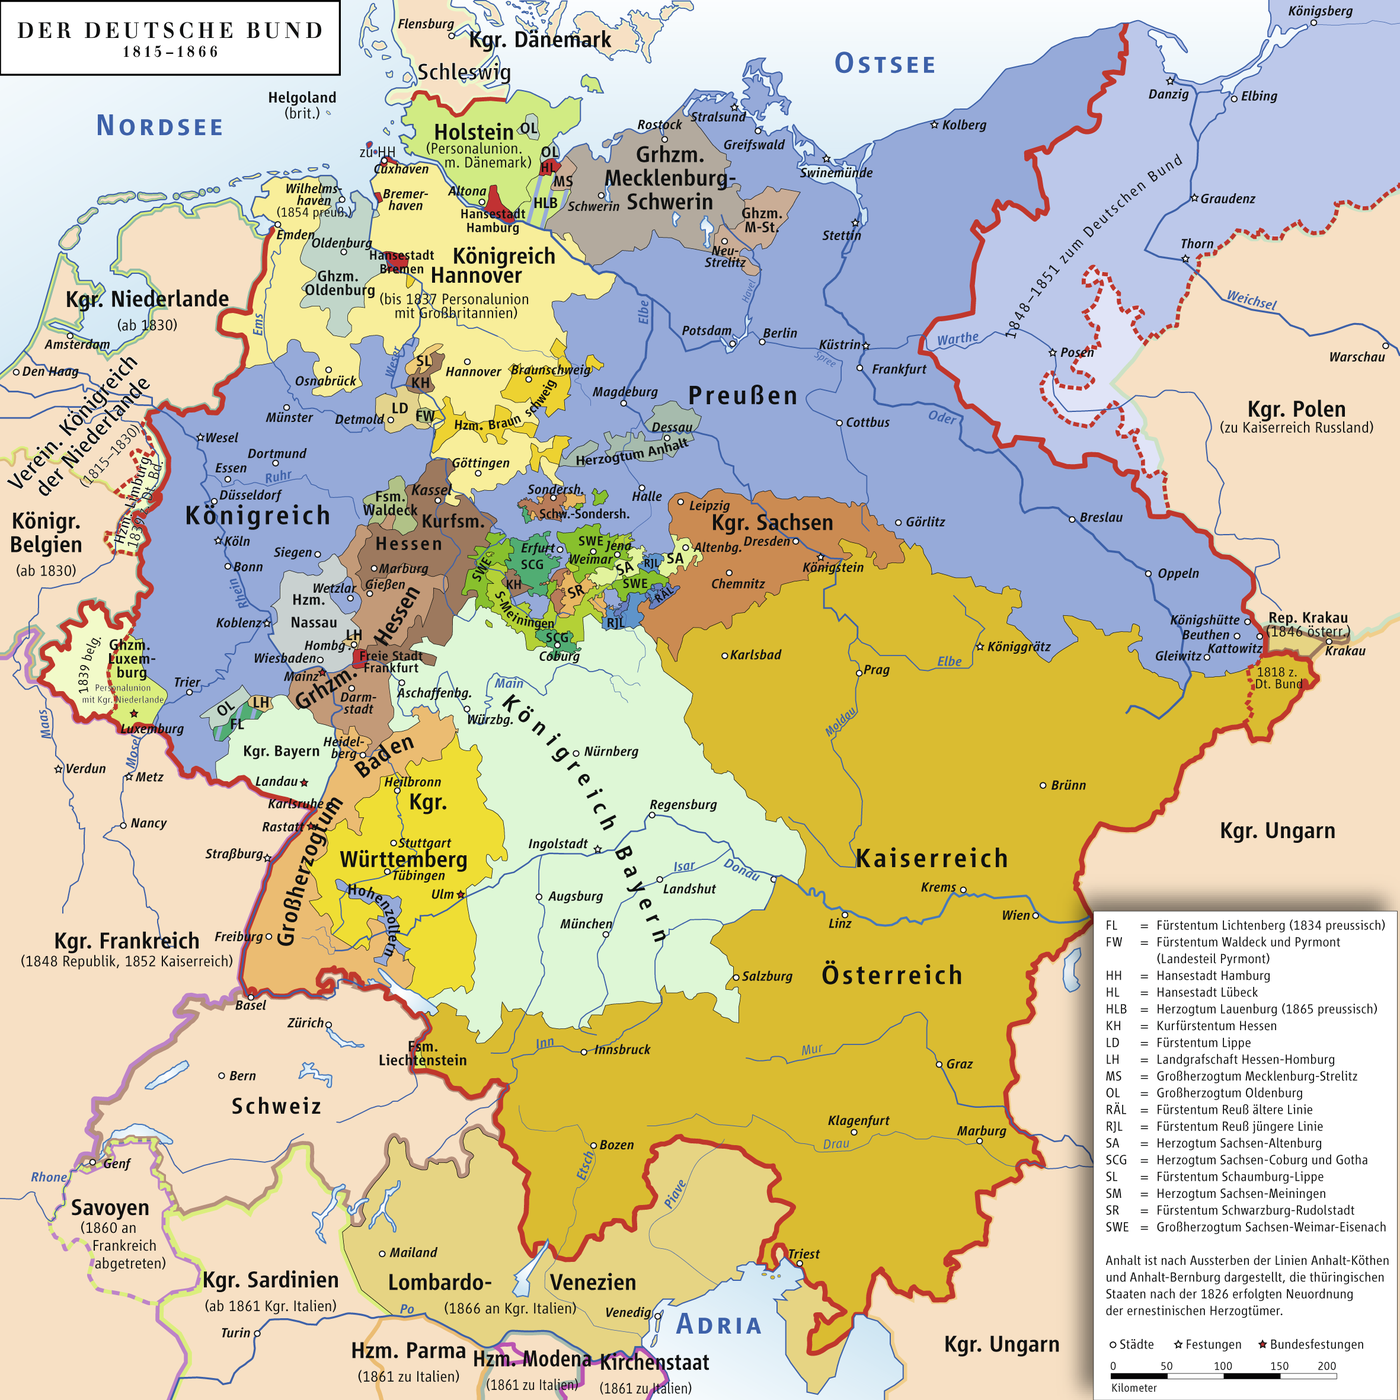 a map of the german confederation